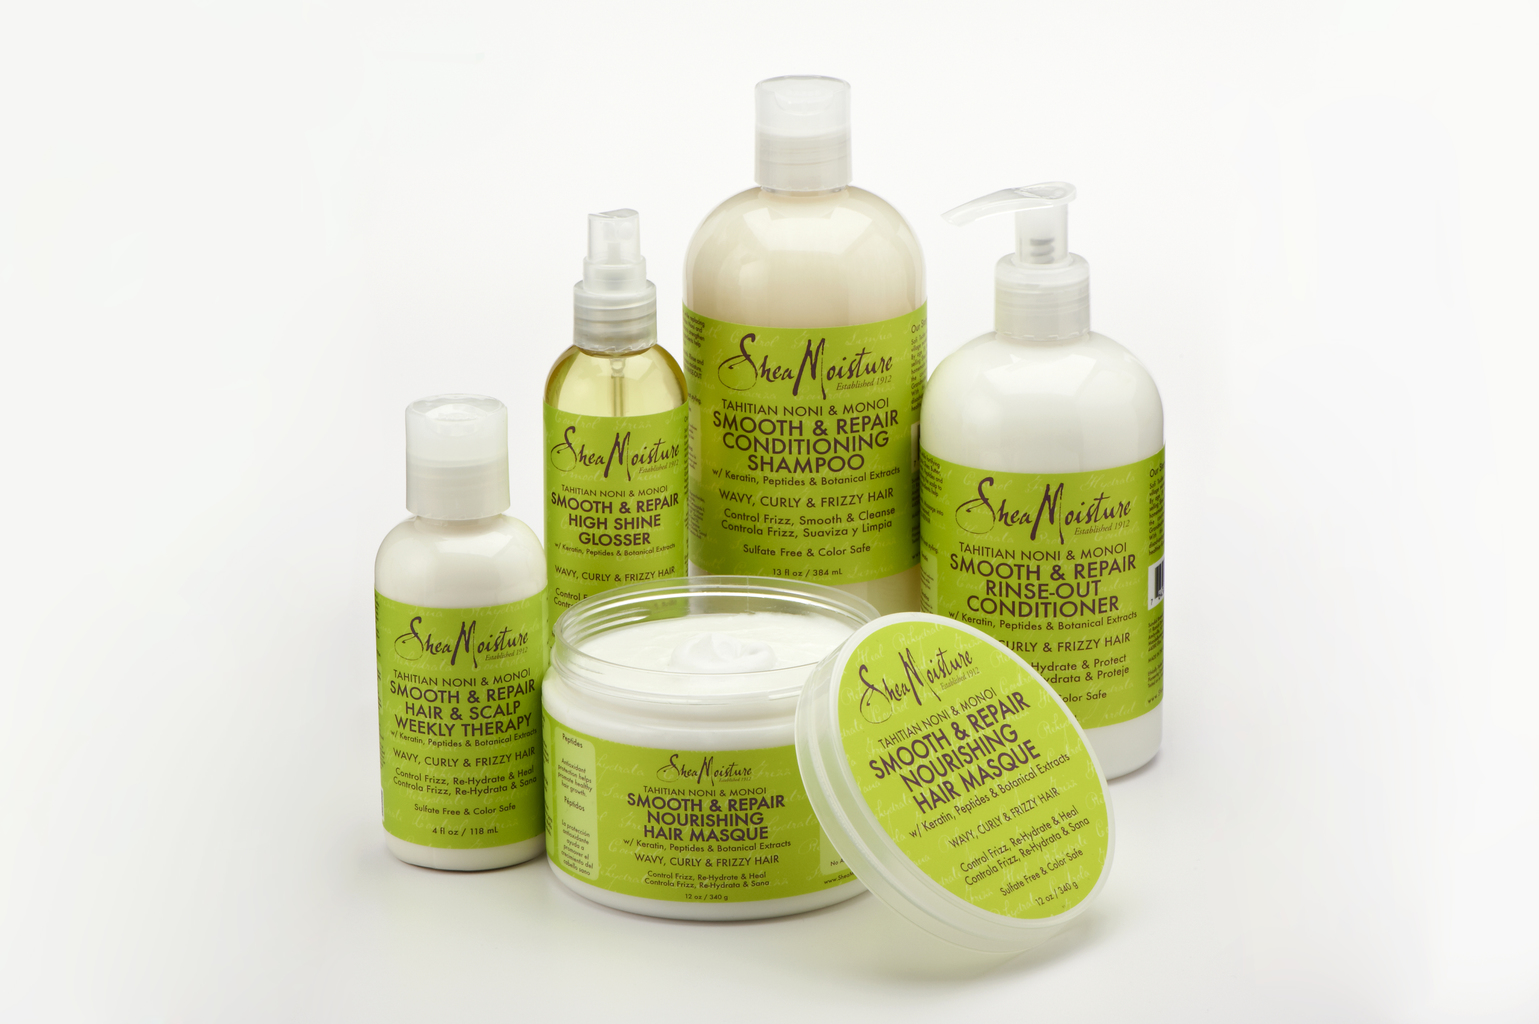 Gift a complete set of Smooth & Repair by Shea Moisture. Find the best deals on #Amazon.